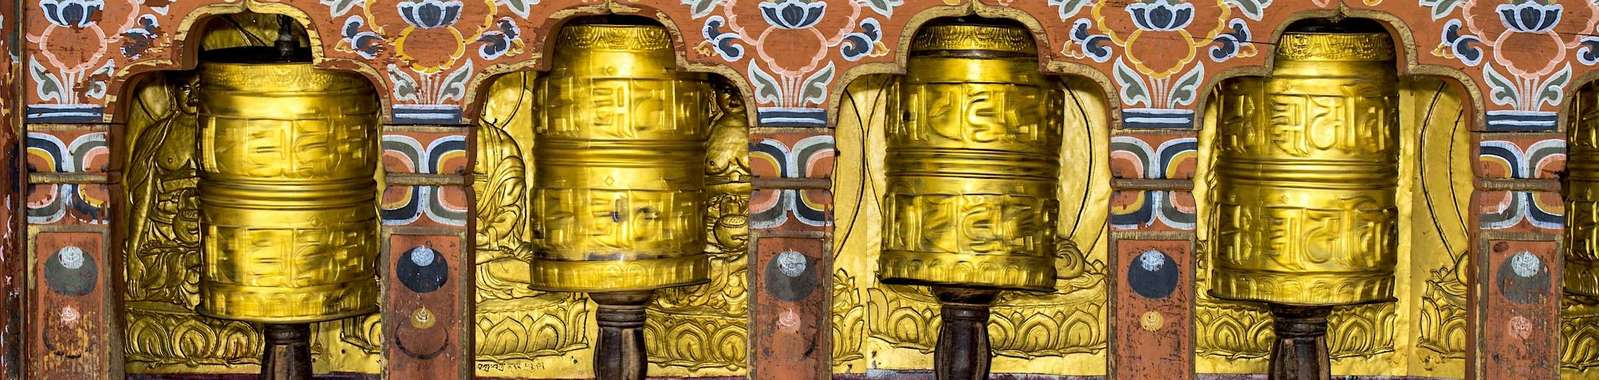 See Buddhist prayer wheels on a on a tailor-made holiday to Bhutan